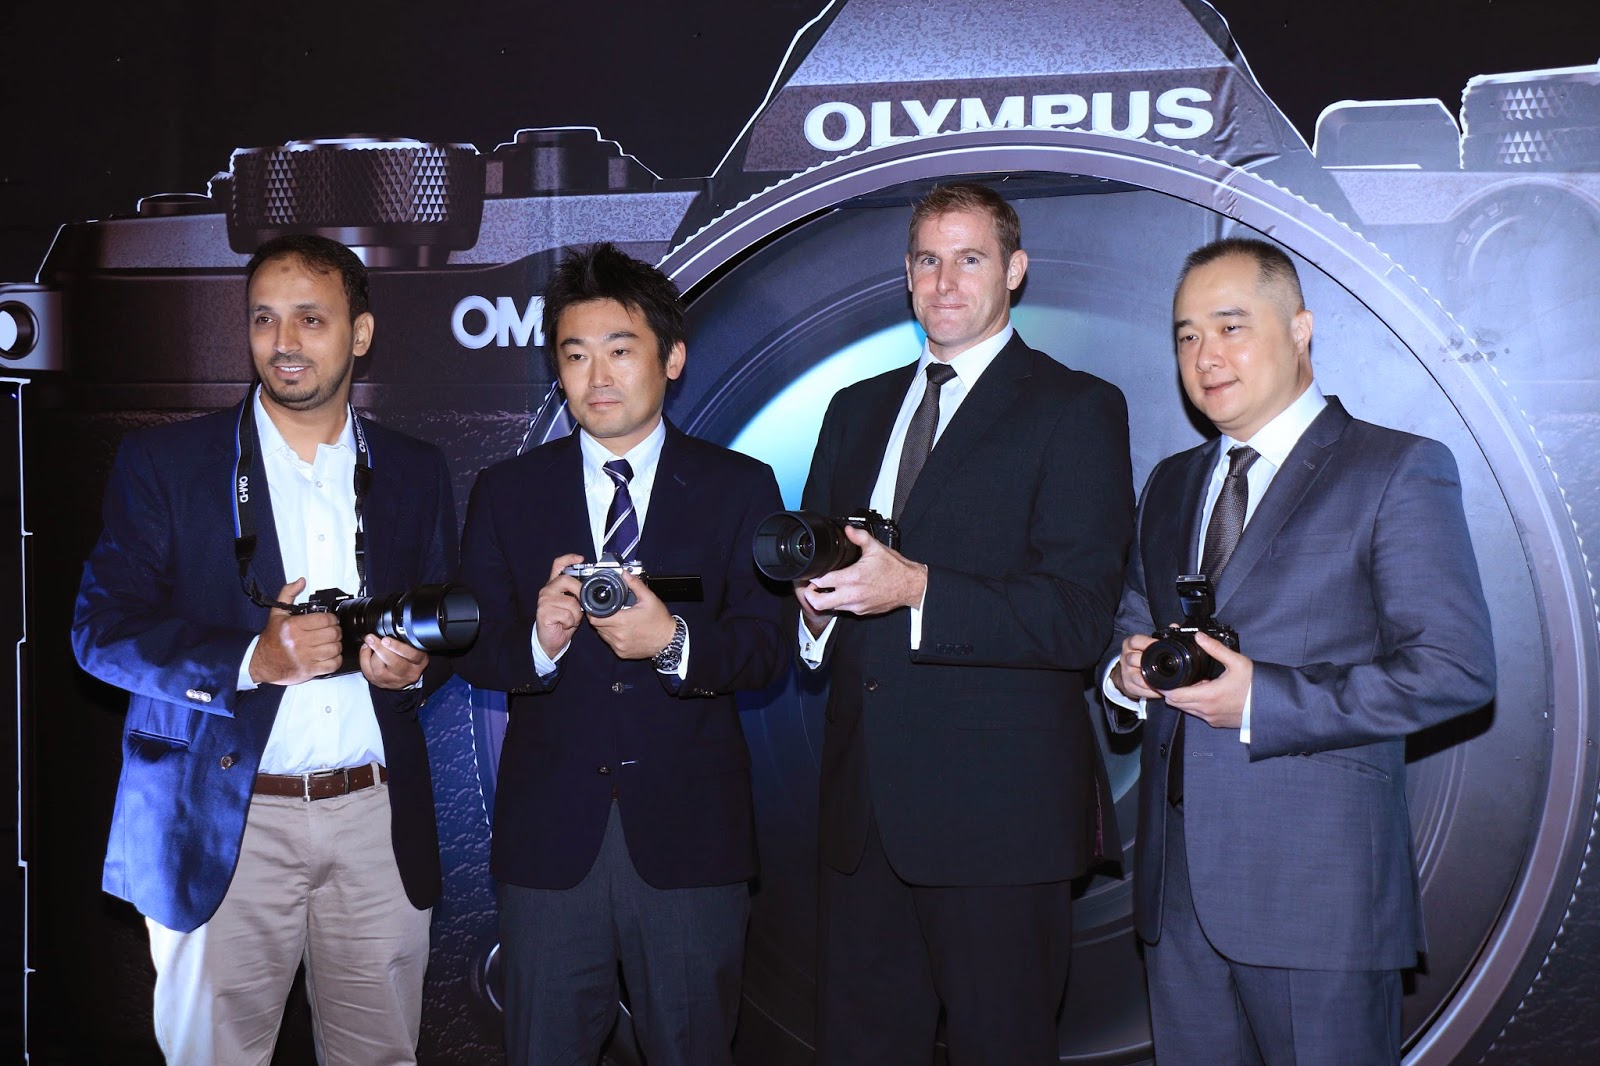 Olympus OM-D E-M5 Mark II launch